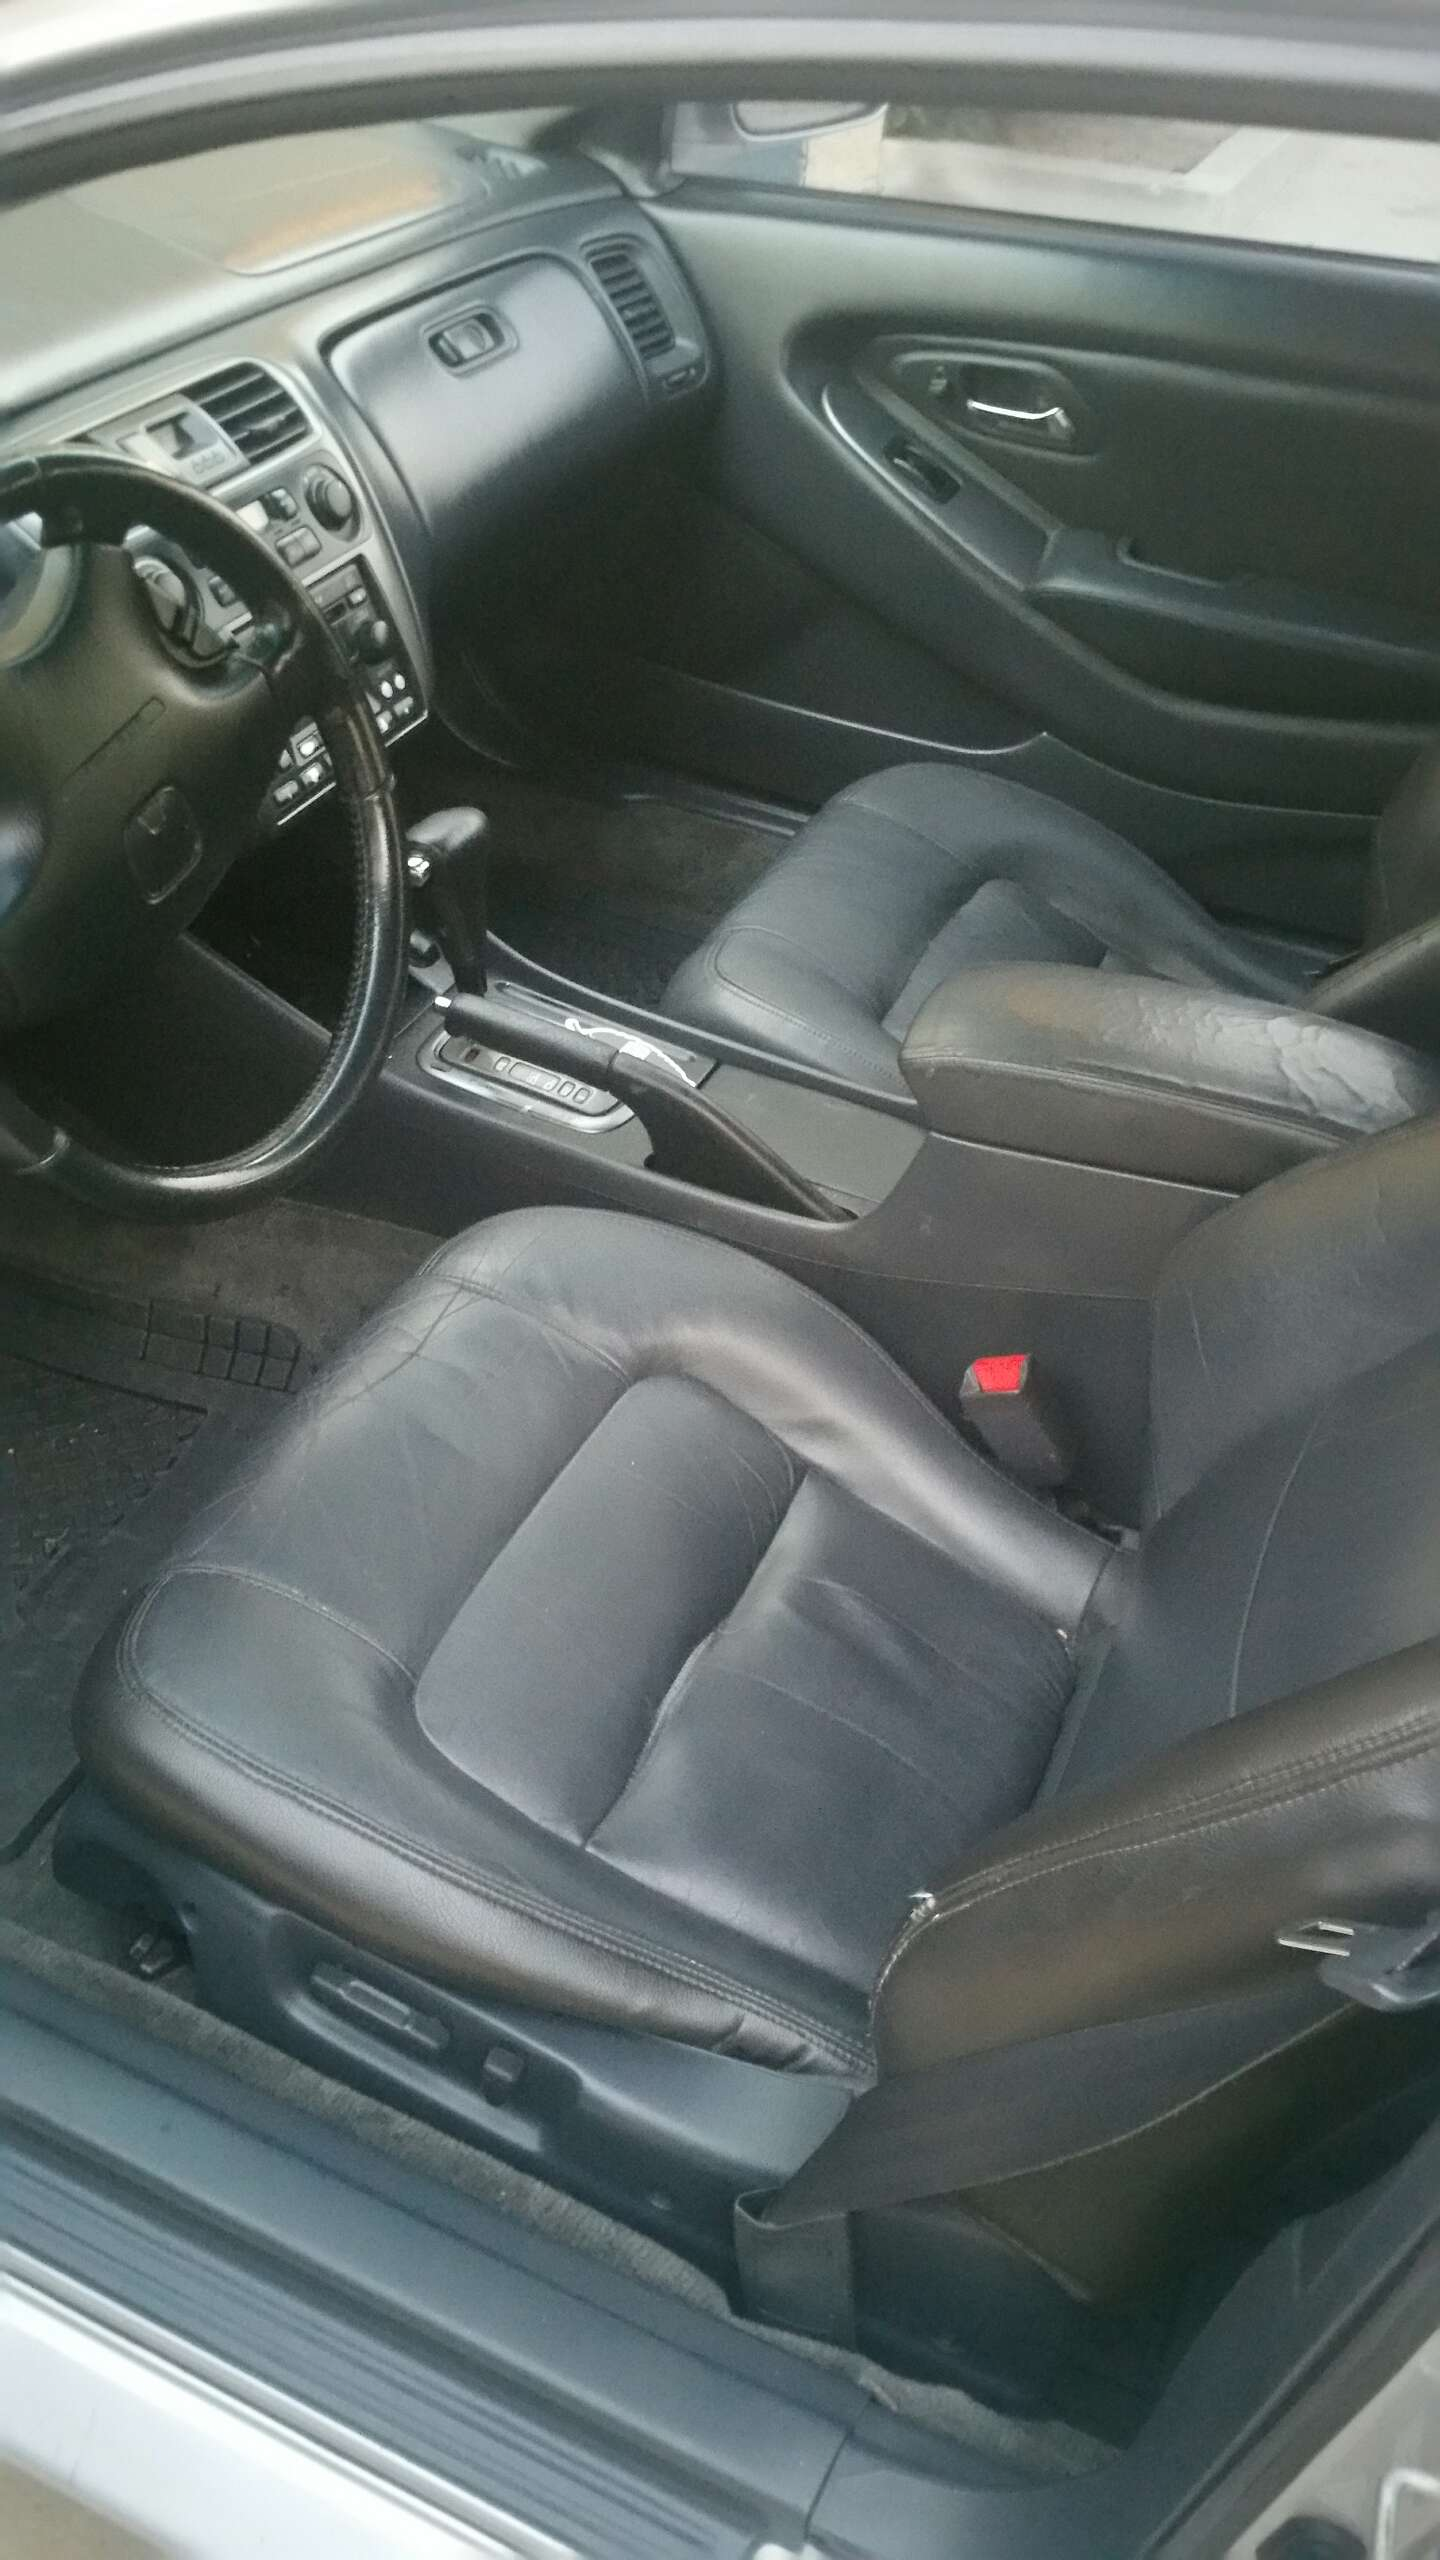 2002 honda accord ex limited edition v tech engine for sale in alhambra ca 5miles buy and sell. Black Bedroom Furniture Sets. Home Design Ideas